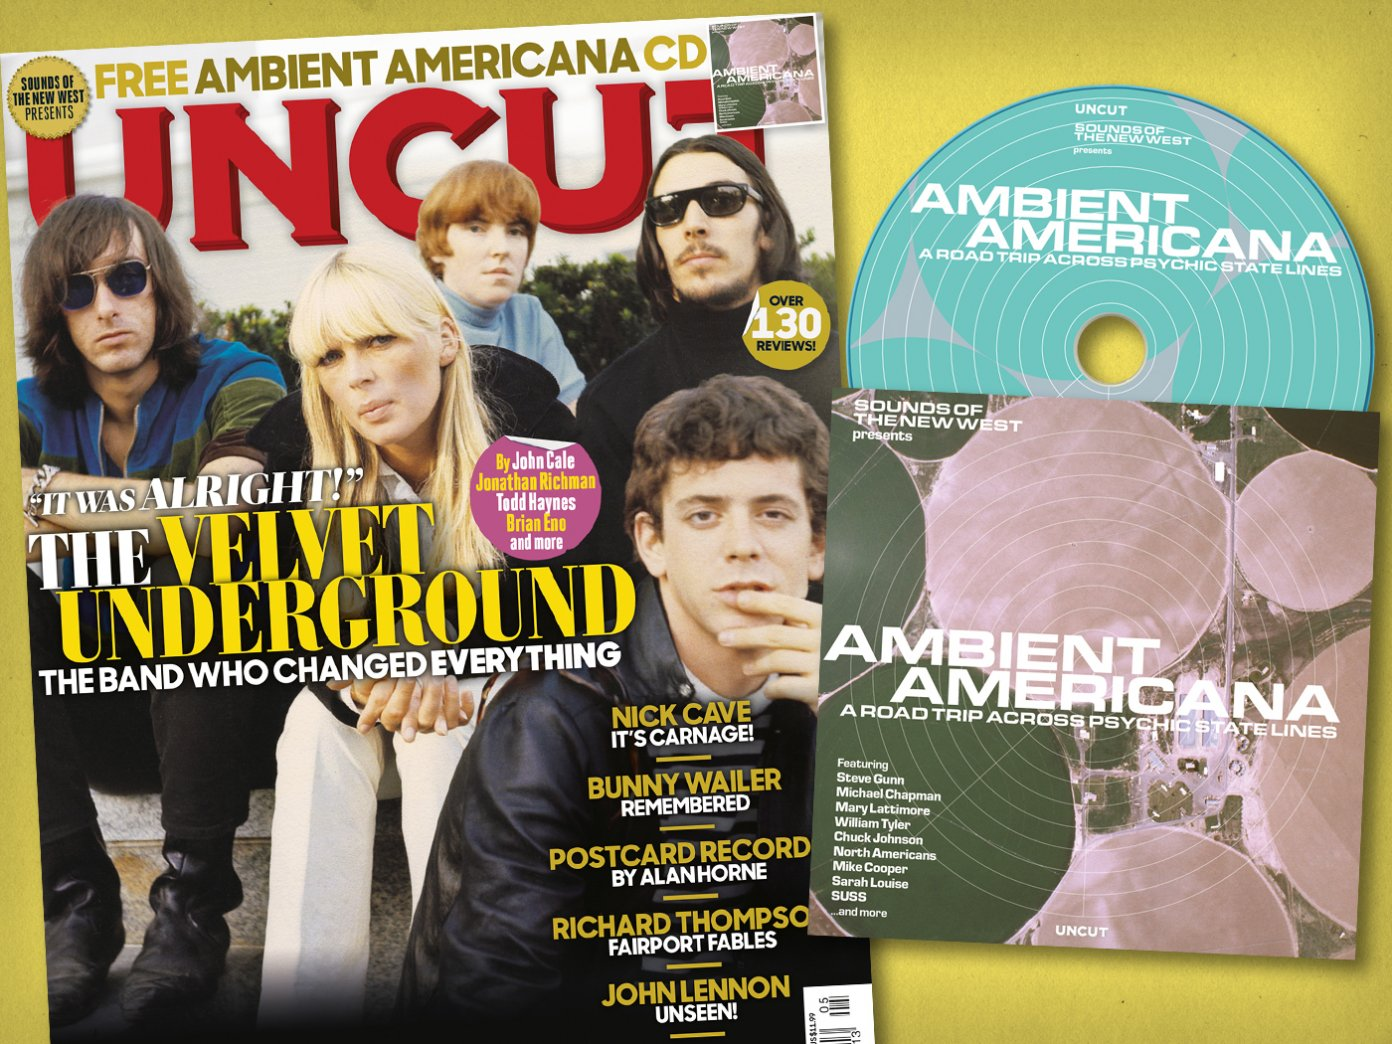 uncut-VU-Issue-cover-and-CD-comp-1392x1044